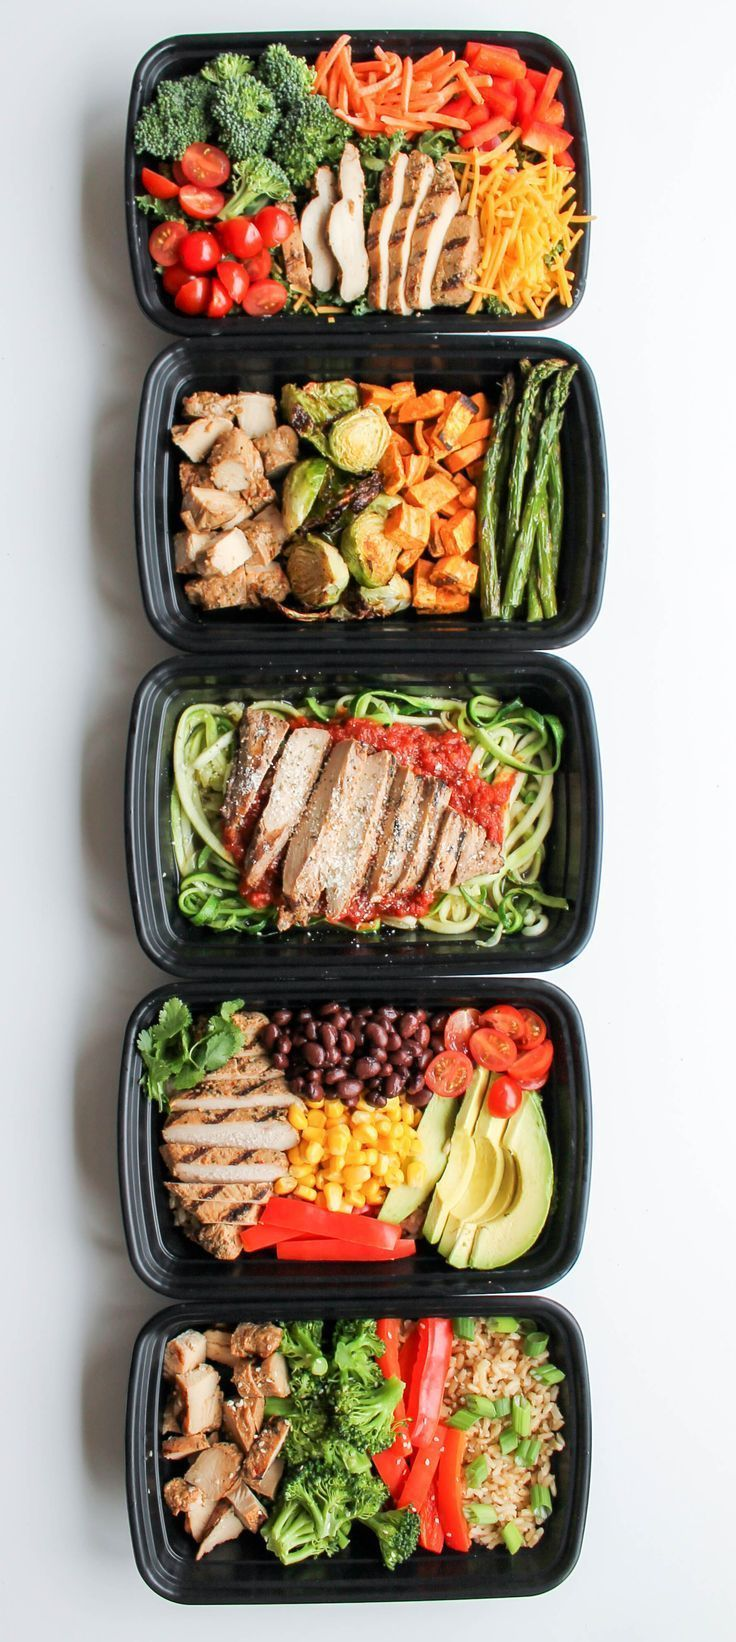 Recipes Snacks Lunch Ideas Easy Chicken Meal Prep Bowls 5 Ways  this is a quick and easy way to have healthy lunch recipes and healthy dinner recipes for the week